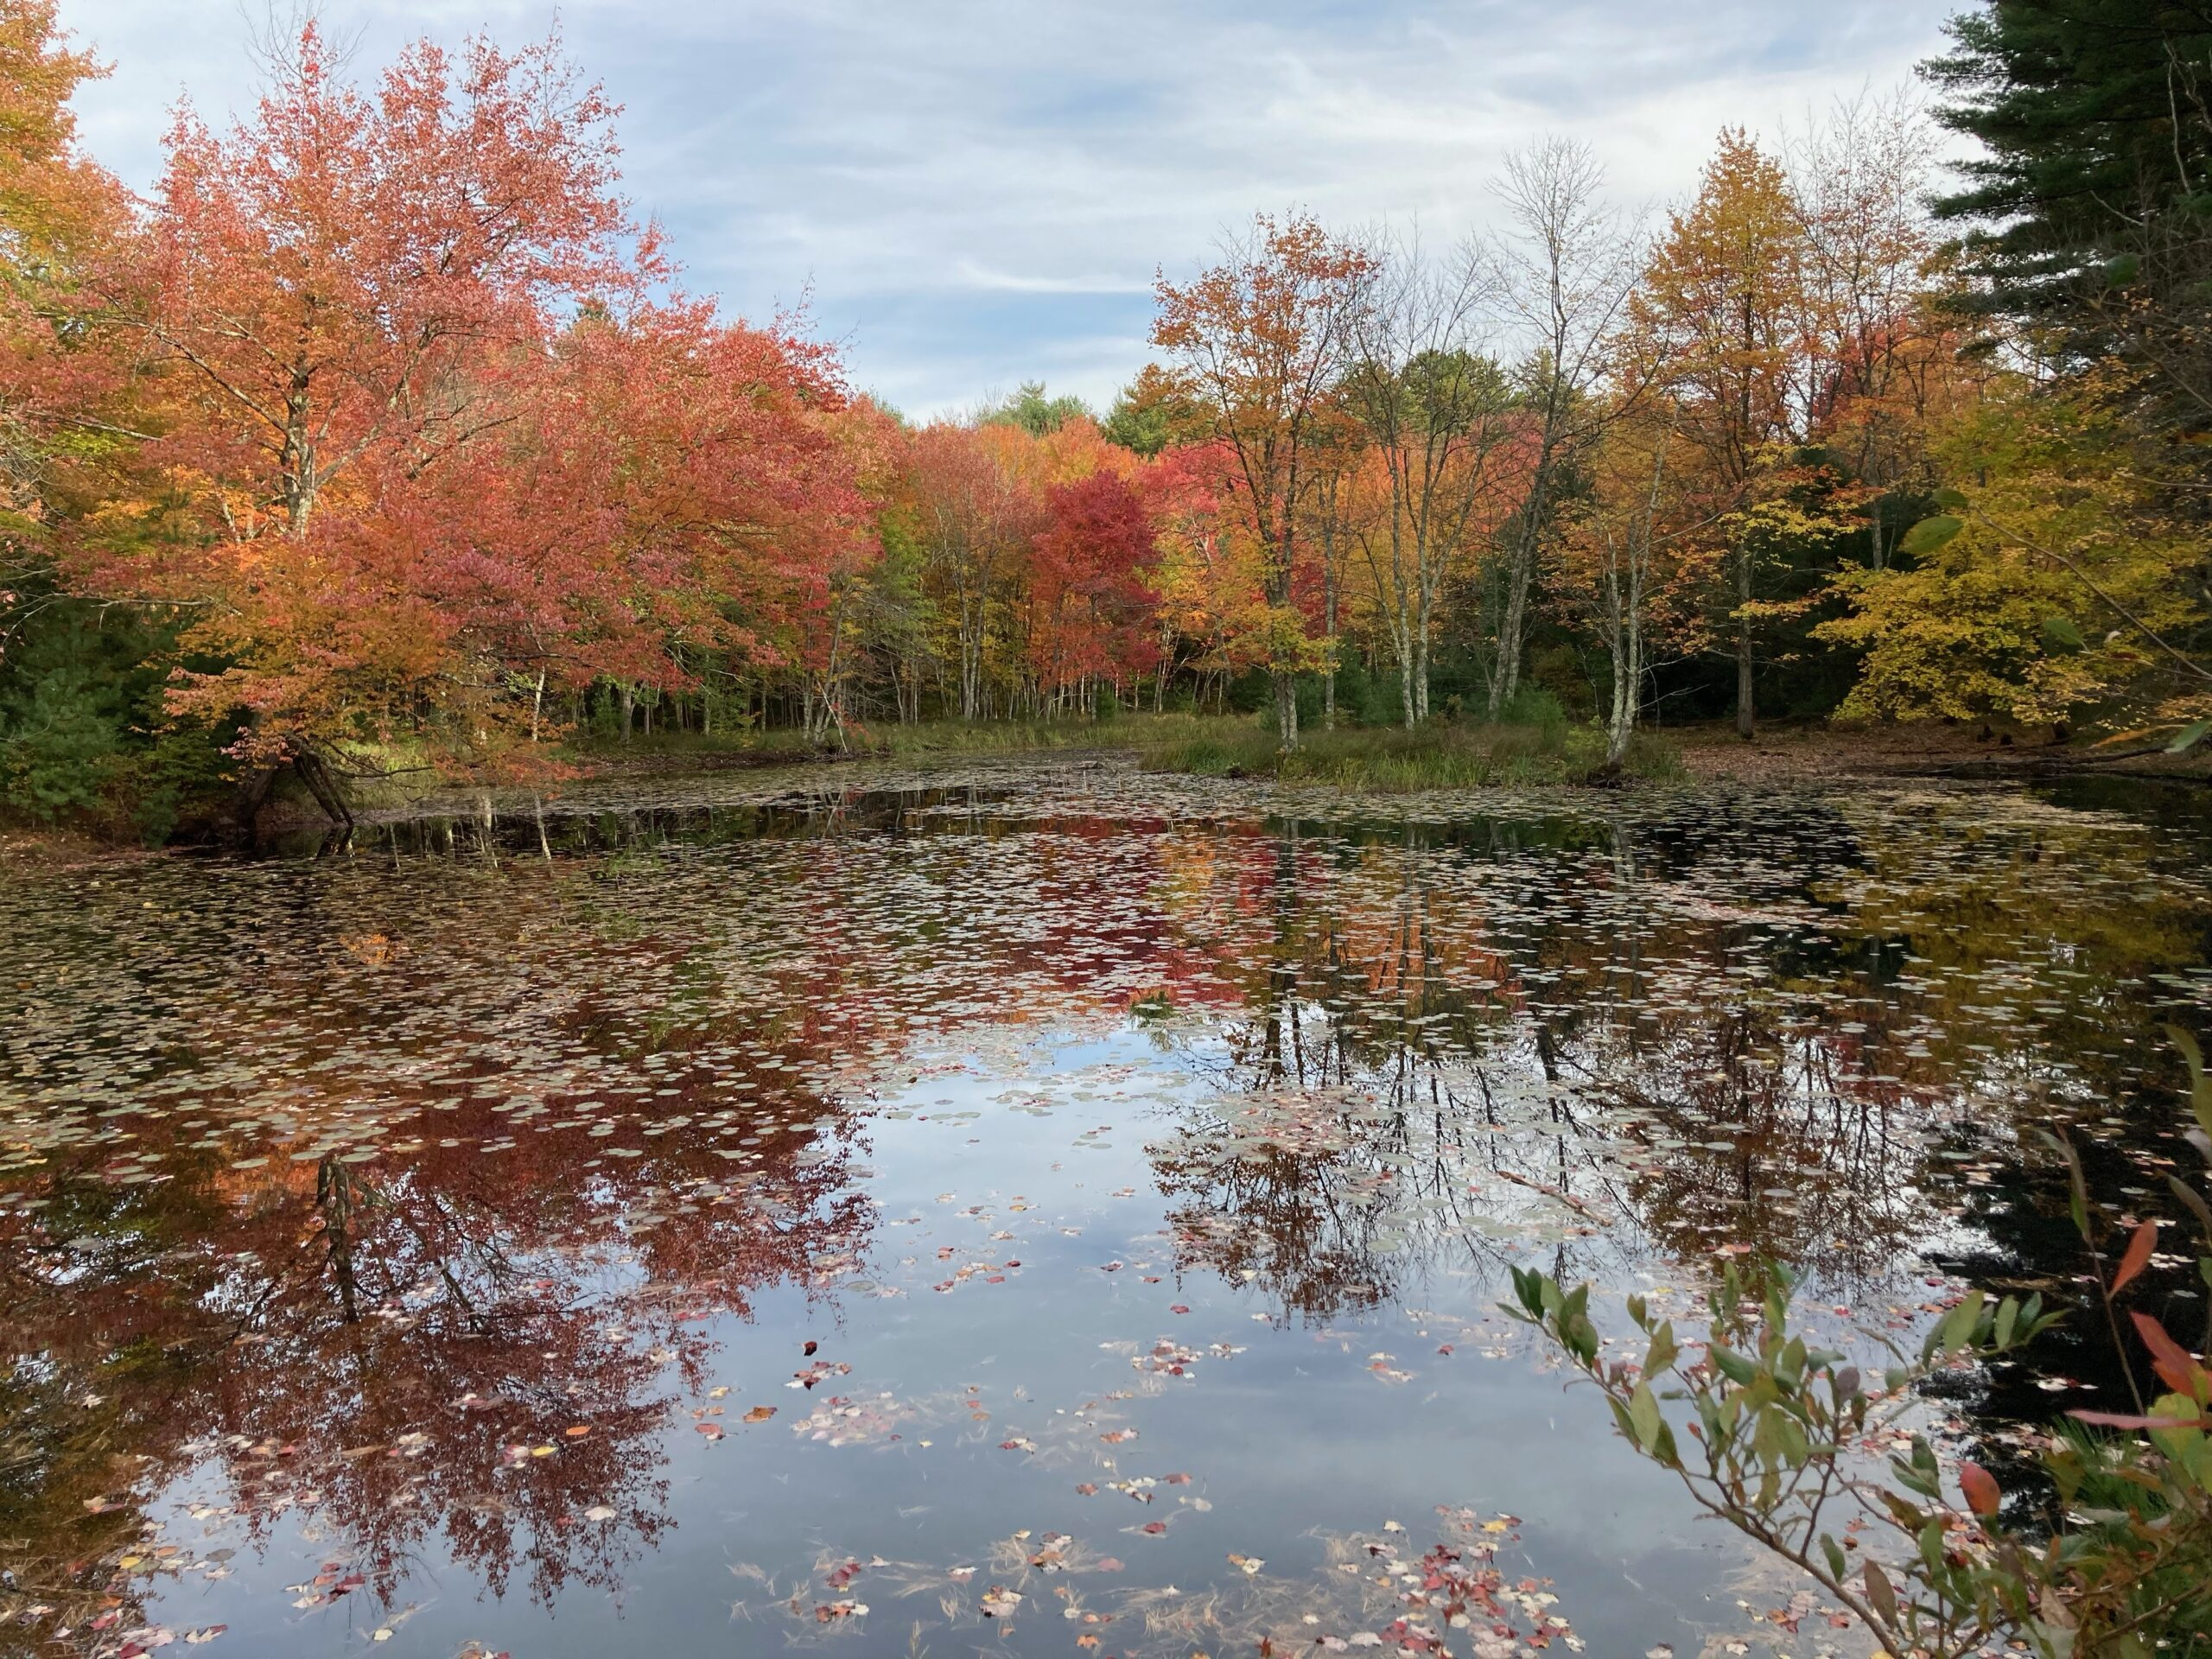 A pond surrounded by trees with autumn colored leaves.